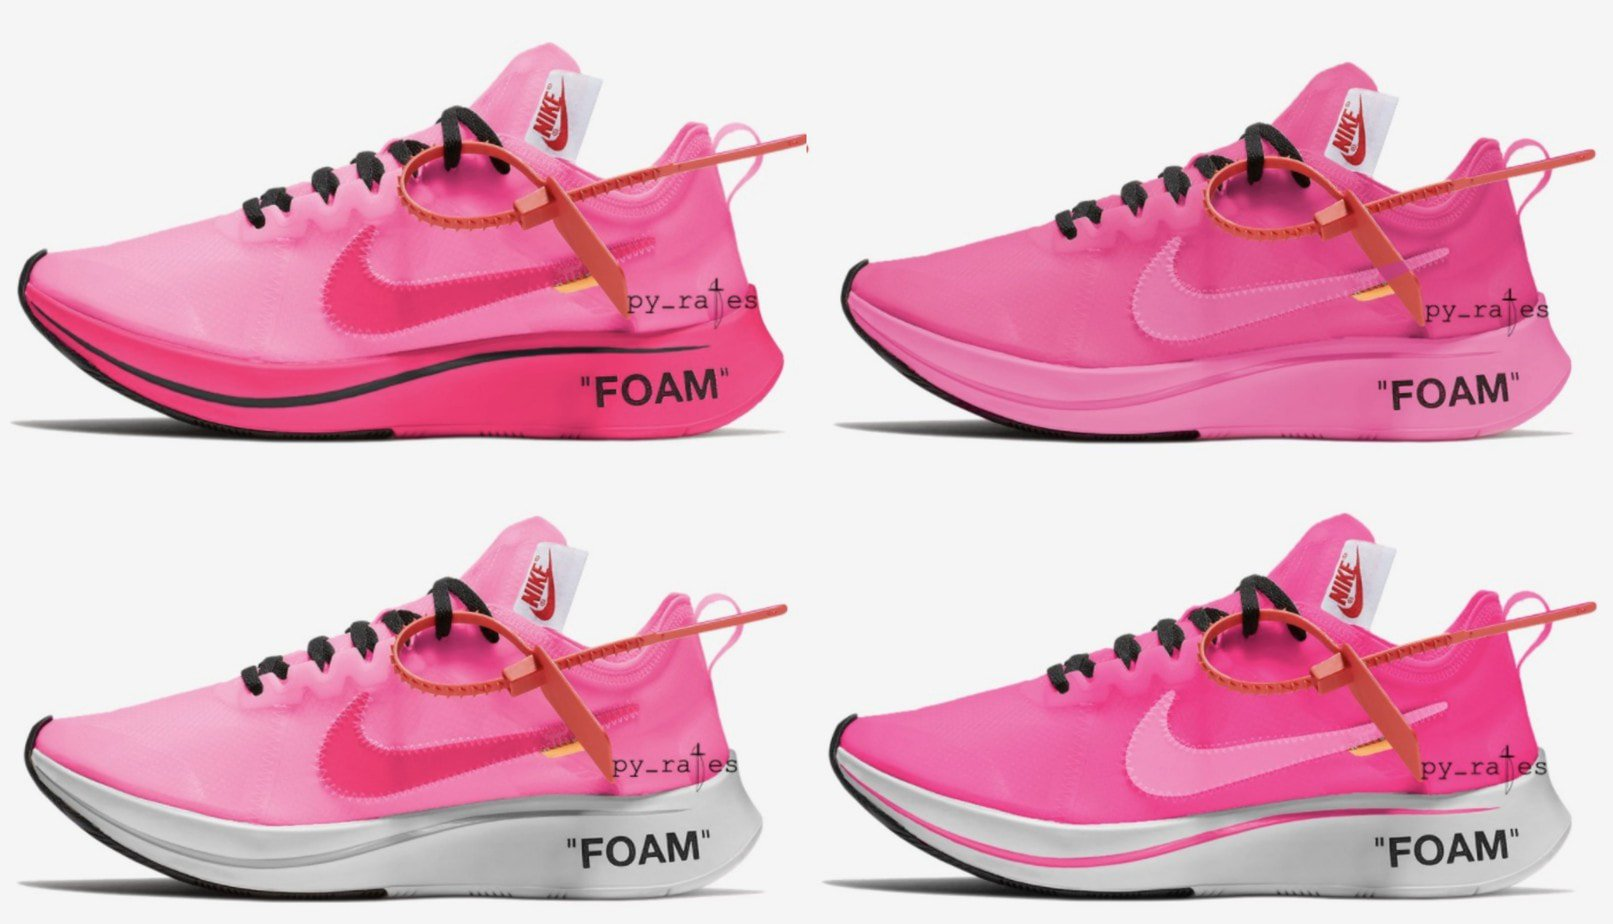 ffca22077822 Off White and Nike Introduce a New Pink Colorway With the Zoom Fly